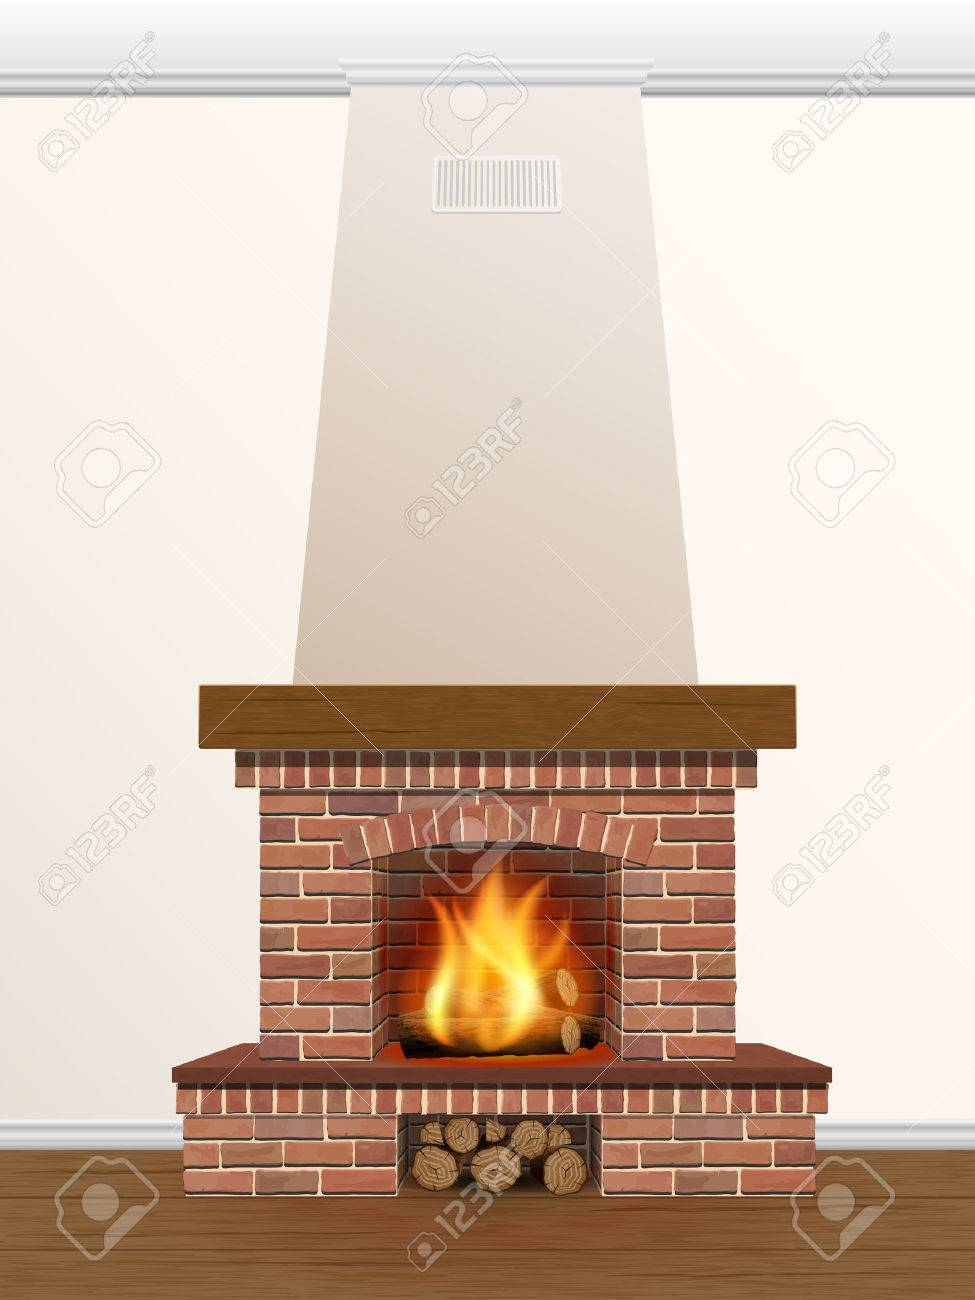 Brick Fireplace With Fire And Firewood Royalty Free Cliparts